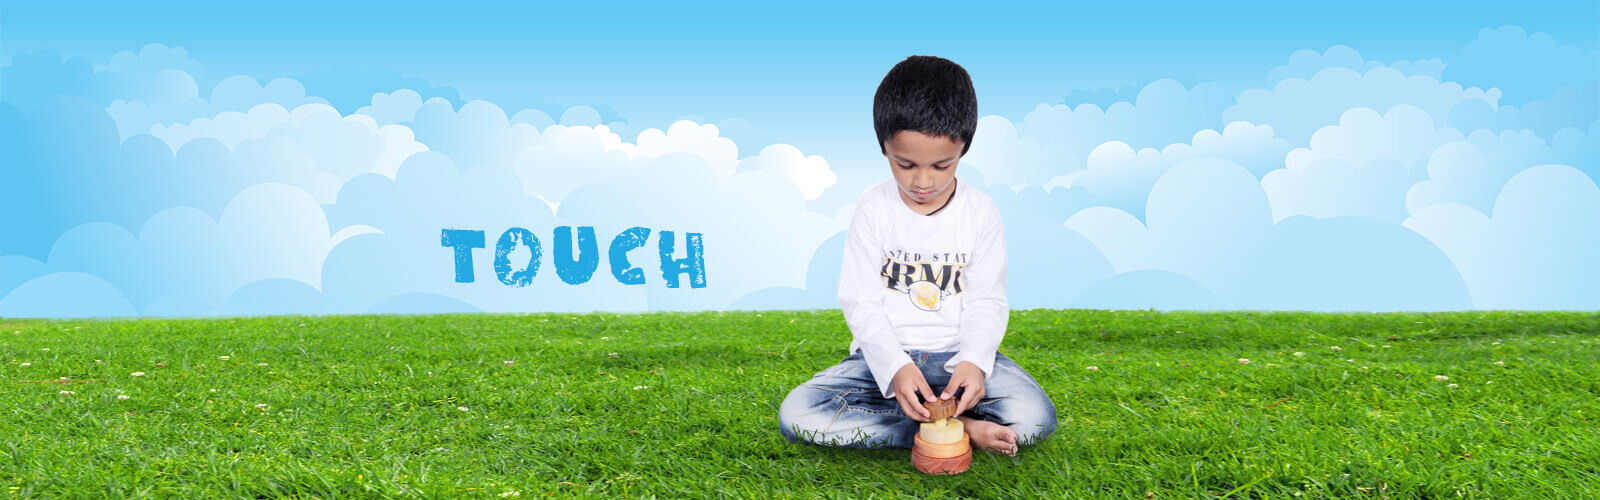 Thasvi Wooden toys - Touch feel Explore